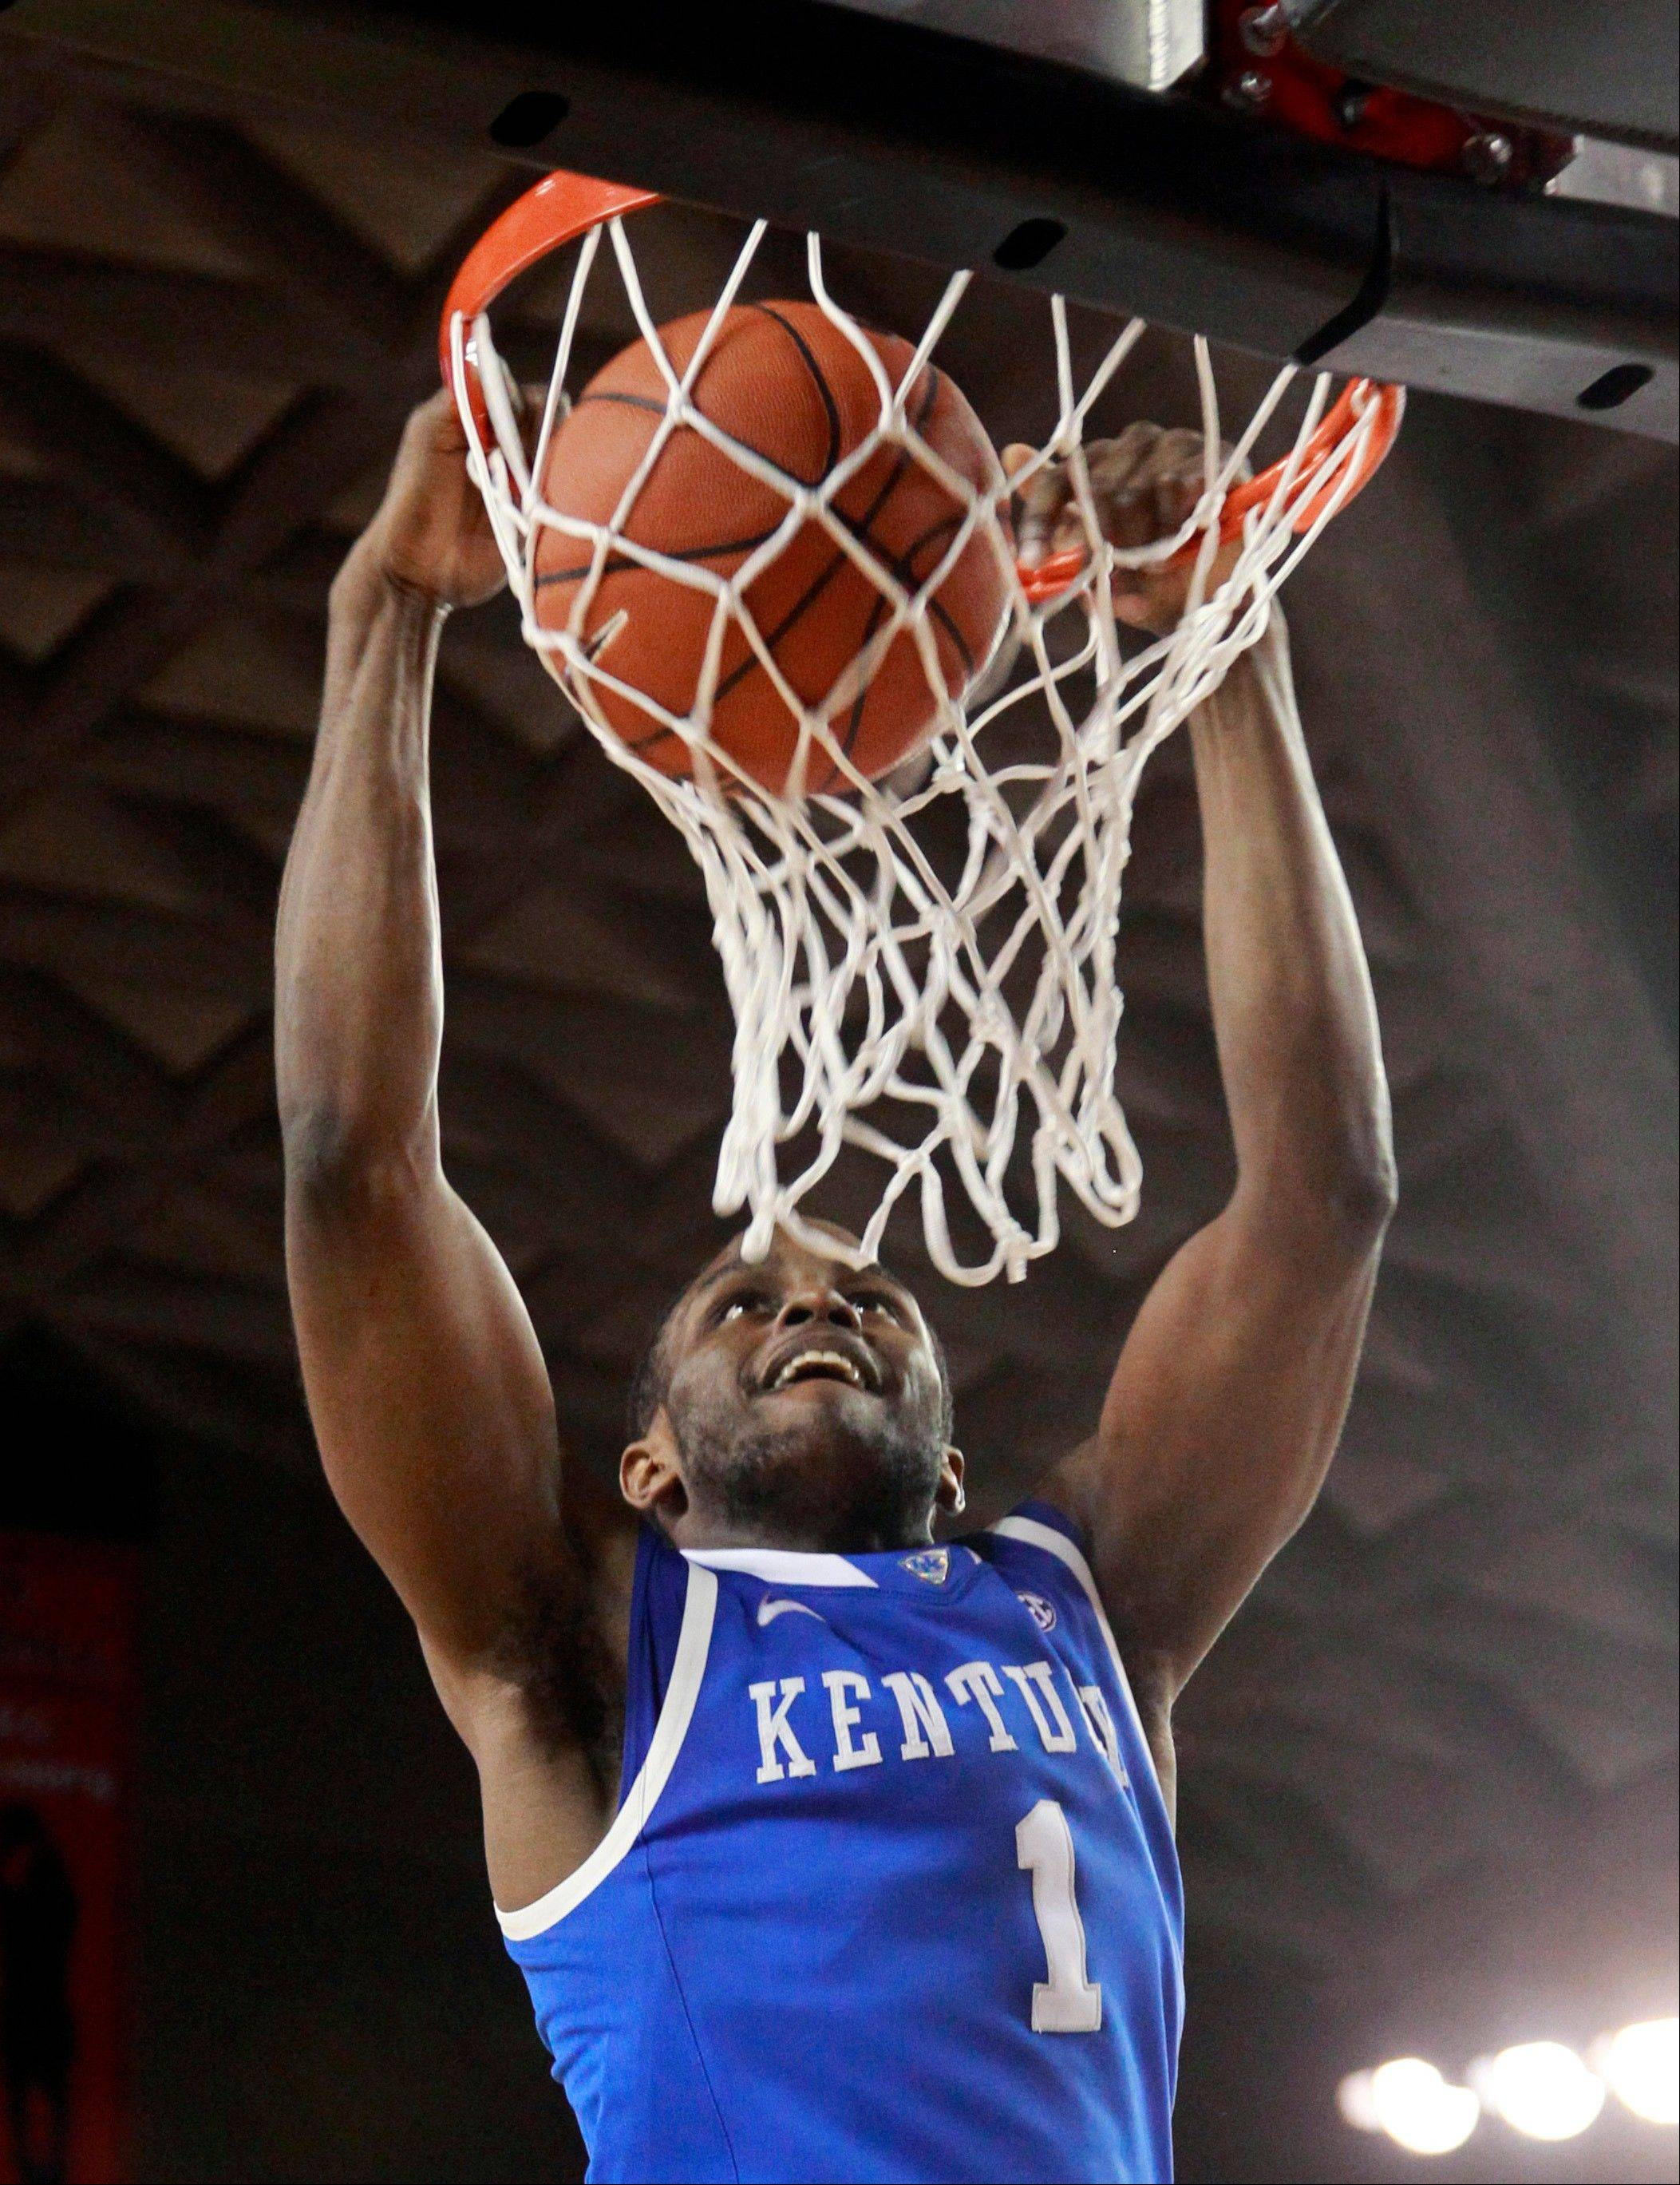 Kentucky guard Darius Miller scores in the second half of Kentucky's 57-44 win over Georgia in an NCAA college basketball game Tuesday, Jan. 24, 2012, in Athens, Ga.